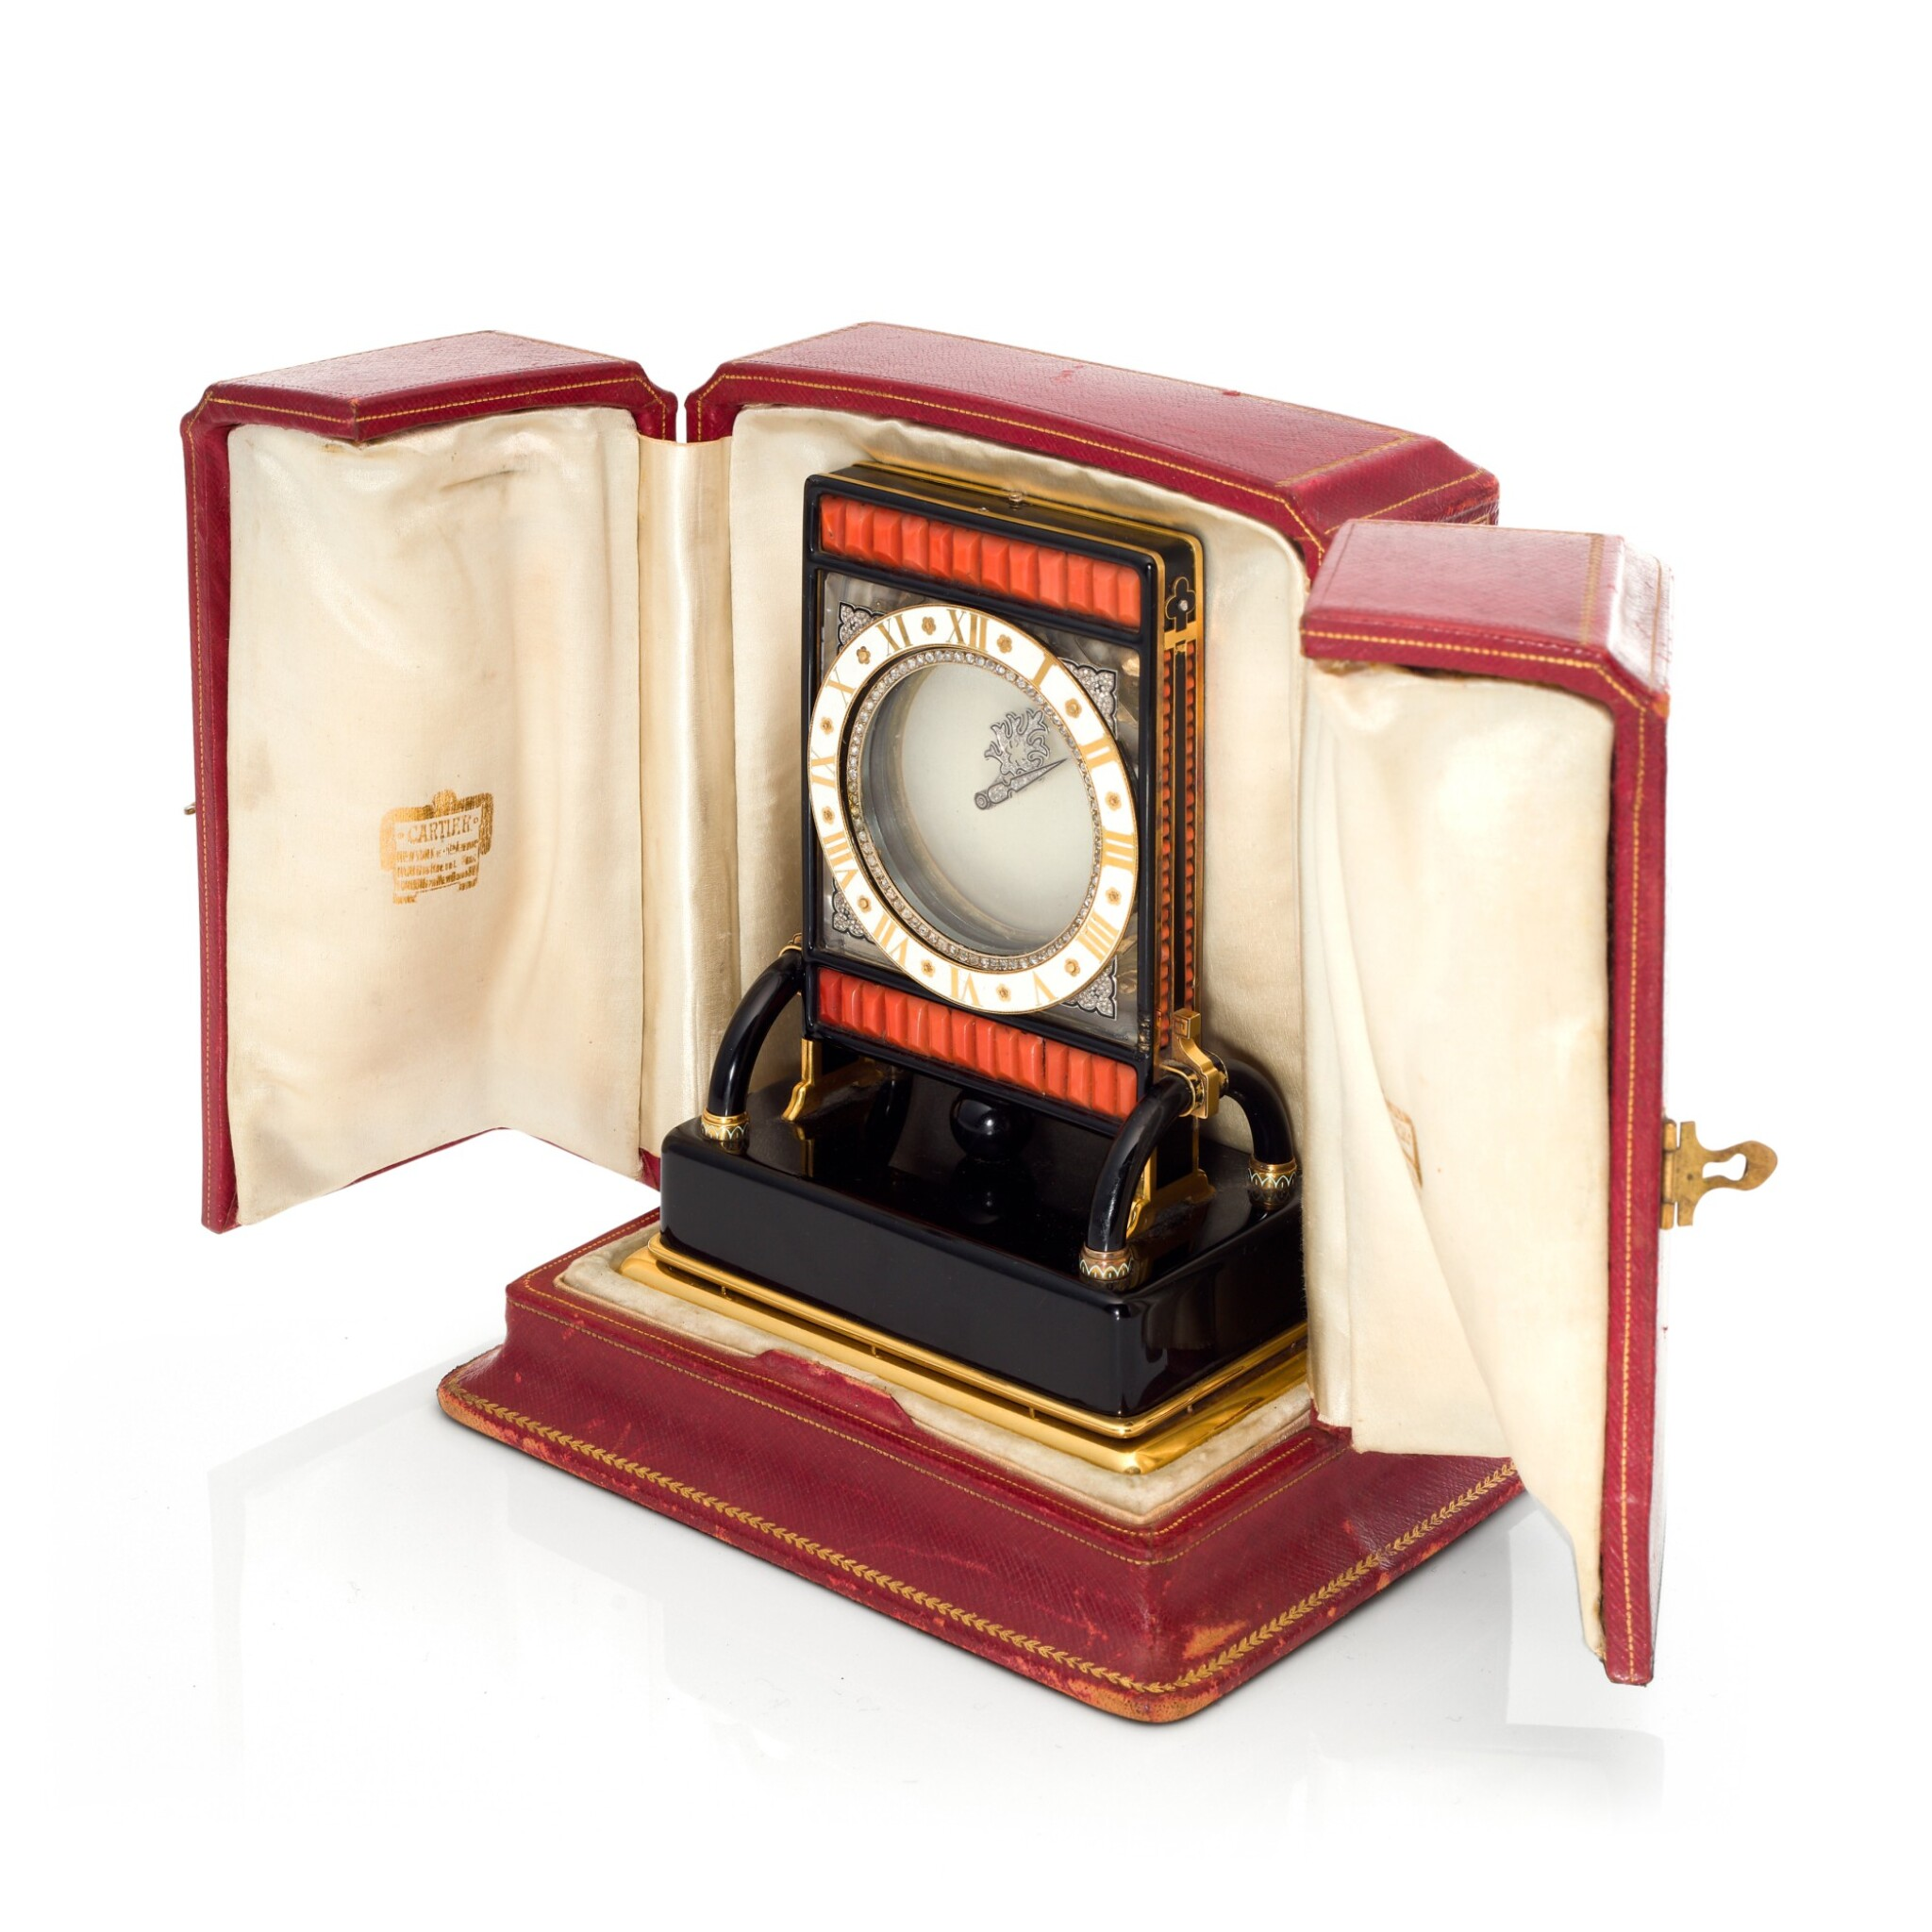 View full screen - View 1 of Lot 93. PENDULE ECRAN AN IMPORTANT AND RARE ROCK CRYSTAL, ONYX, ENAMEL, CORAL, YELLOW GOLD AND DIAMOND-SET MYSTERY DESK TIMEPIECE, CIRCA 1926.